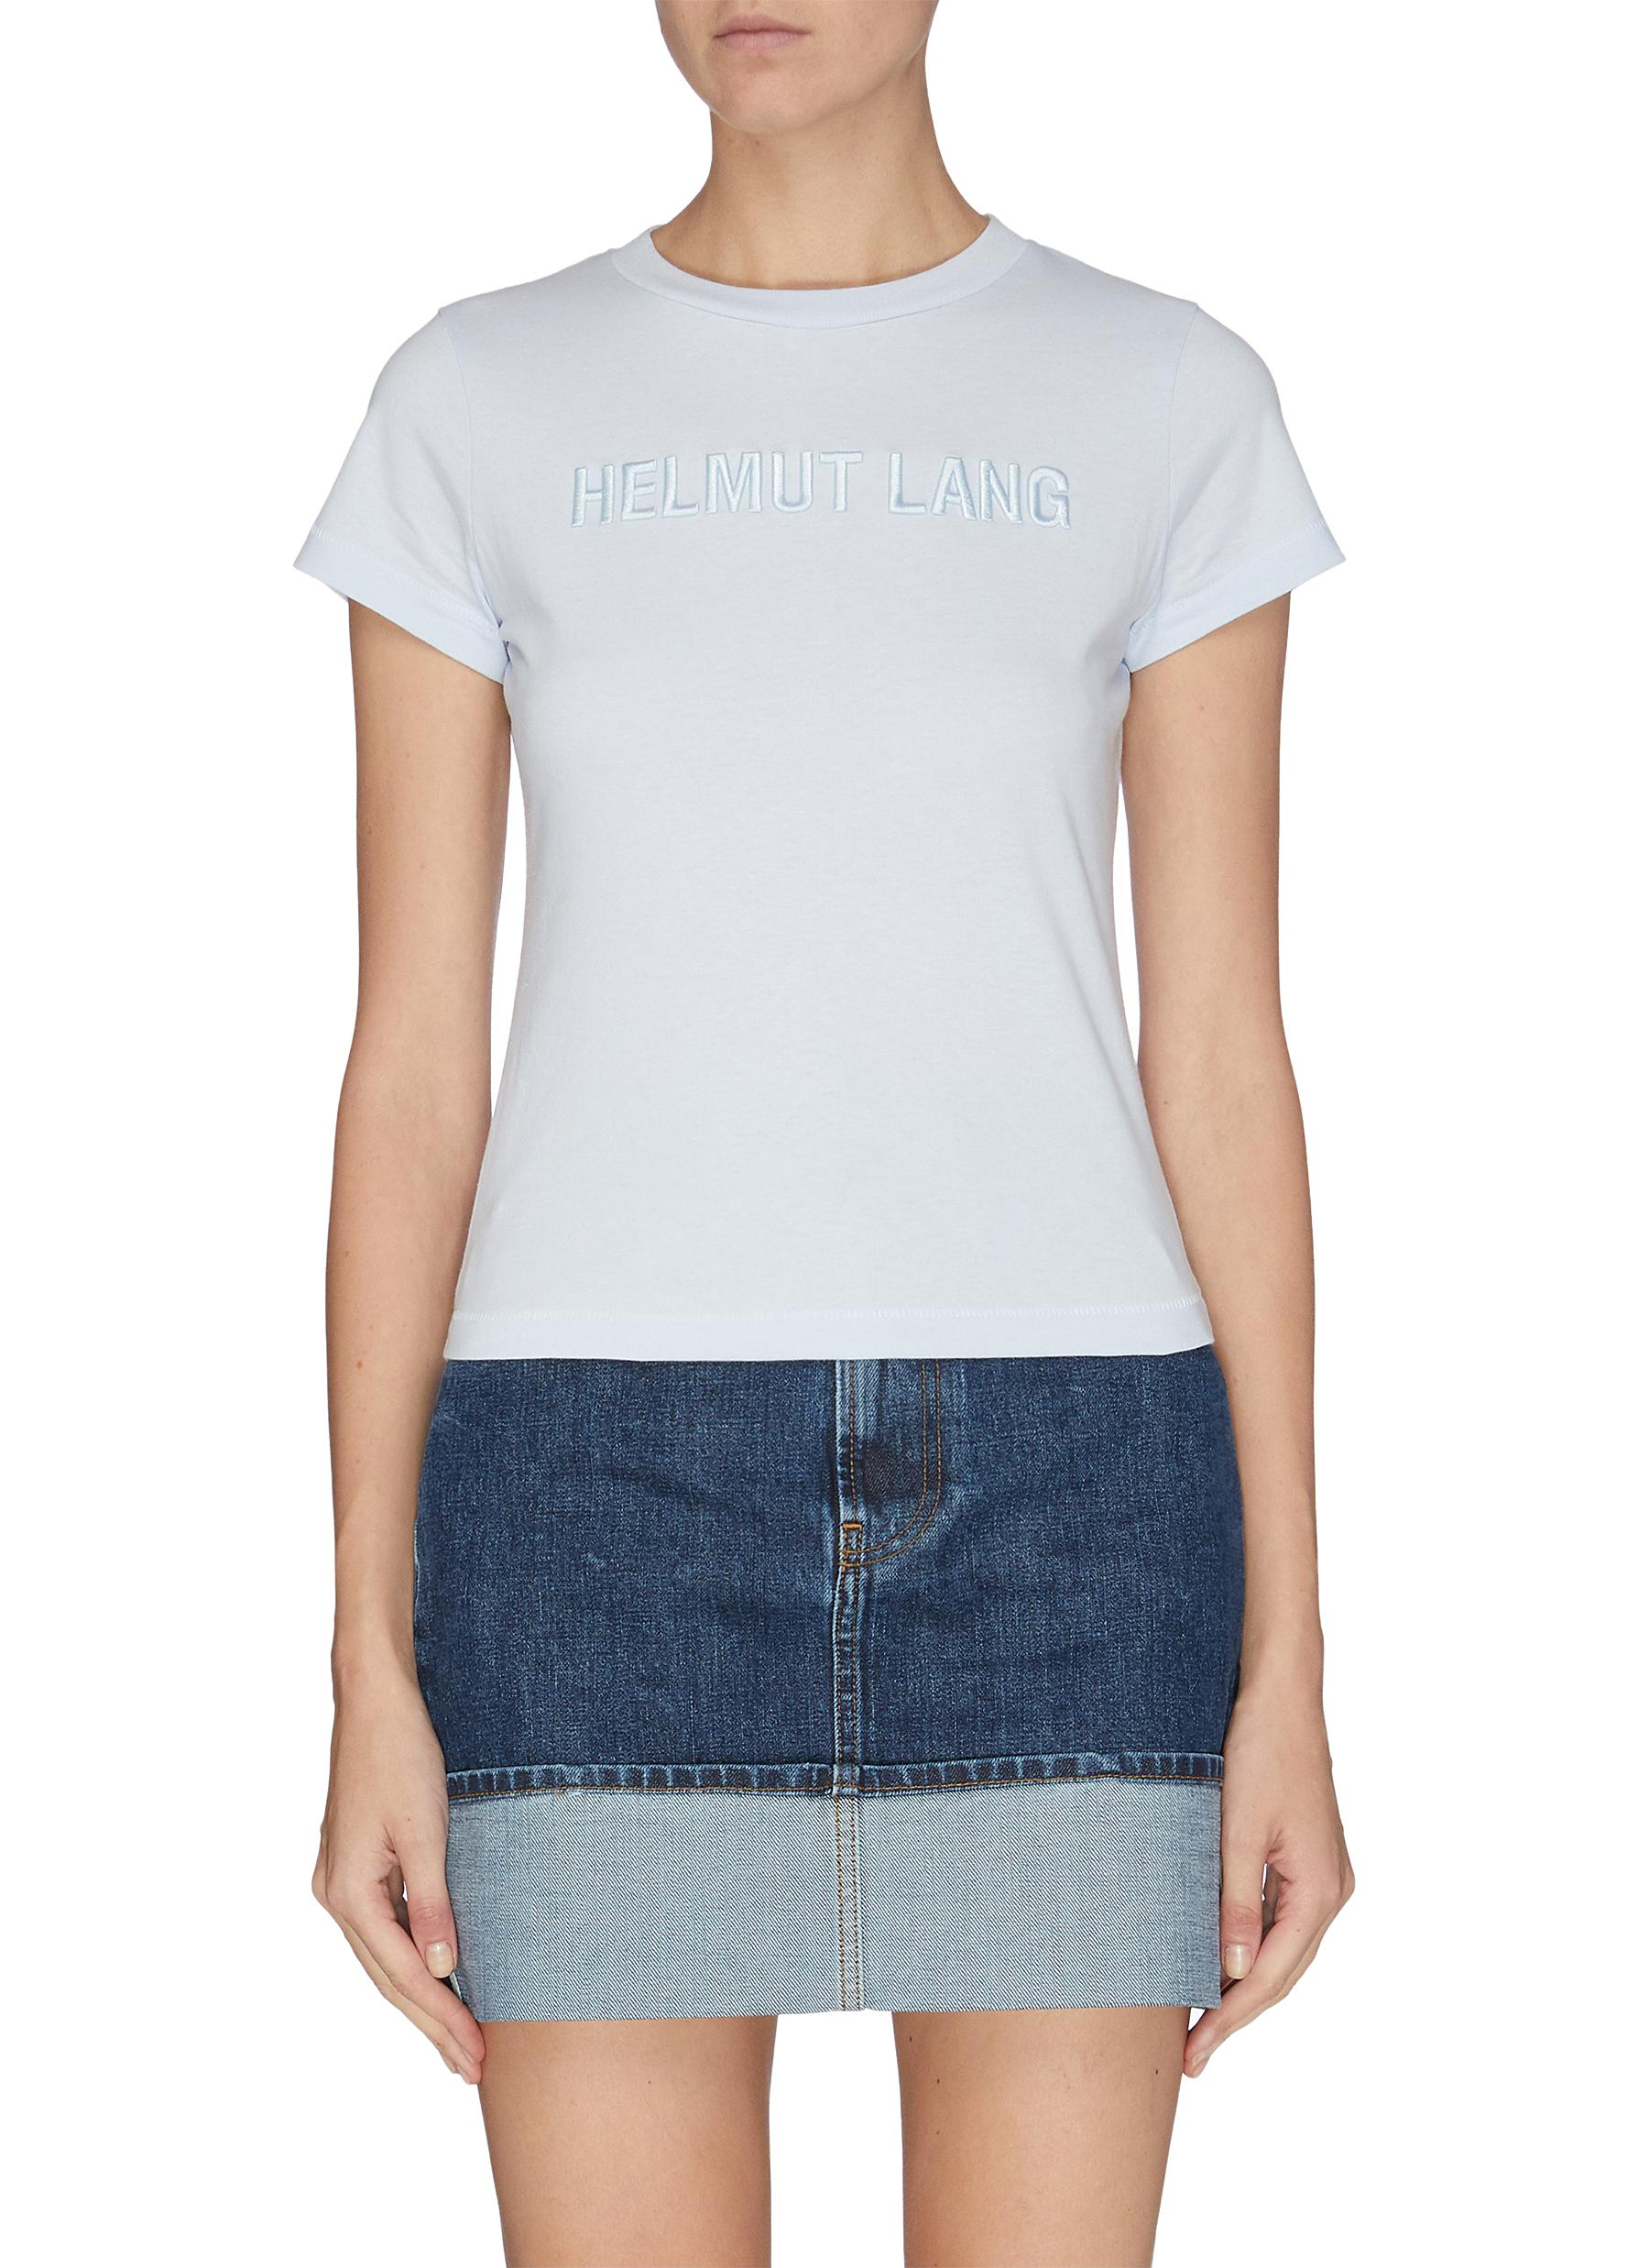 Buy Helmut Lang Tops 'Baby' standard logo embroidered T-shirt